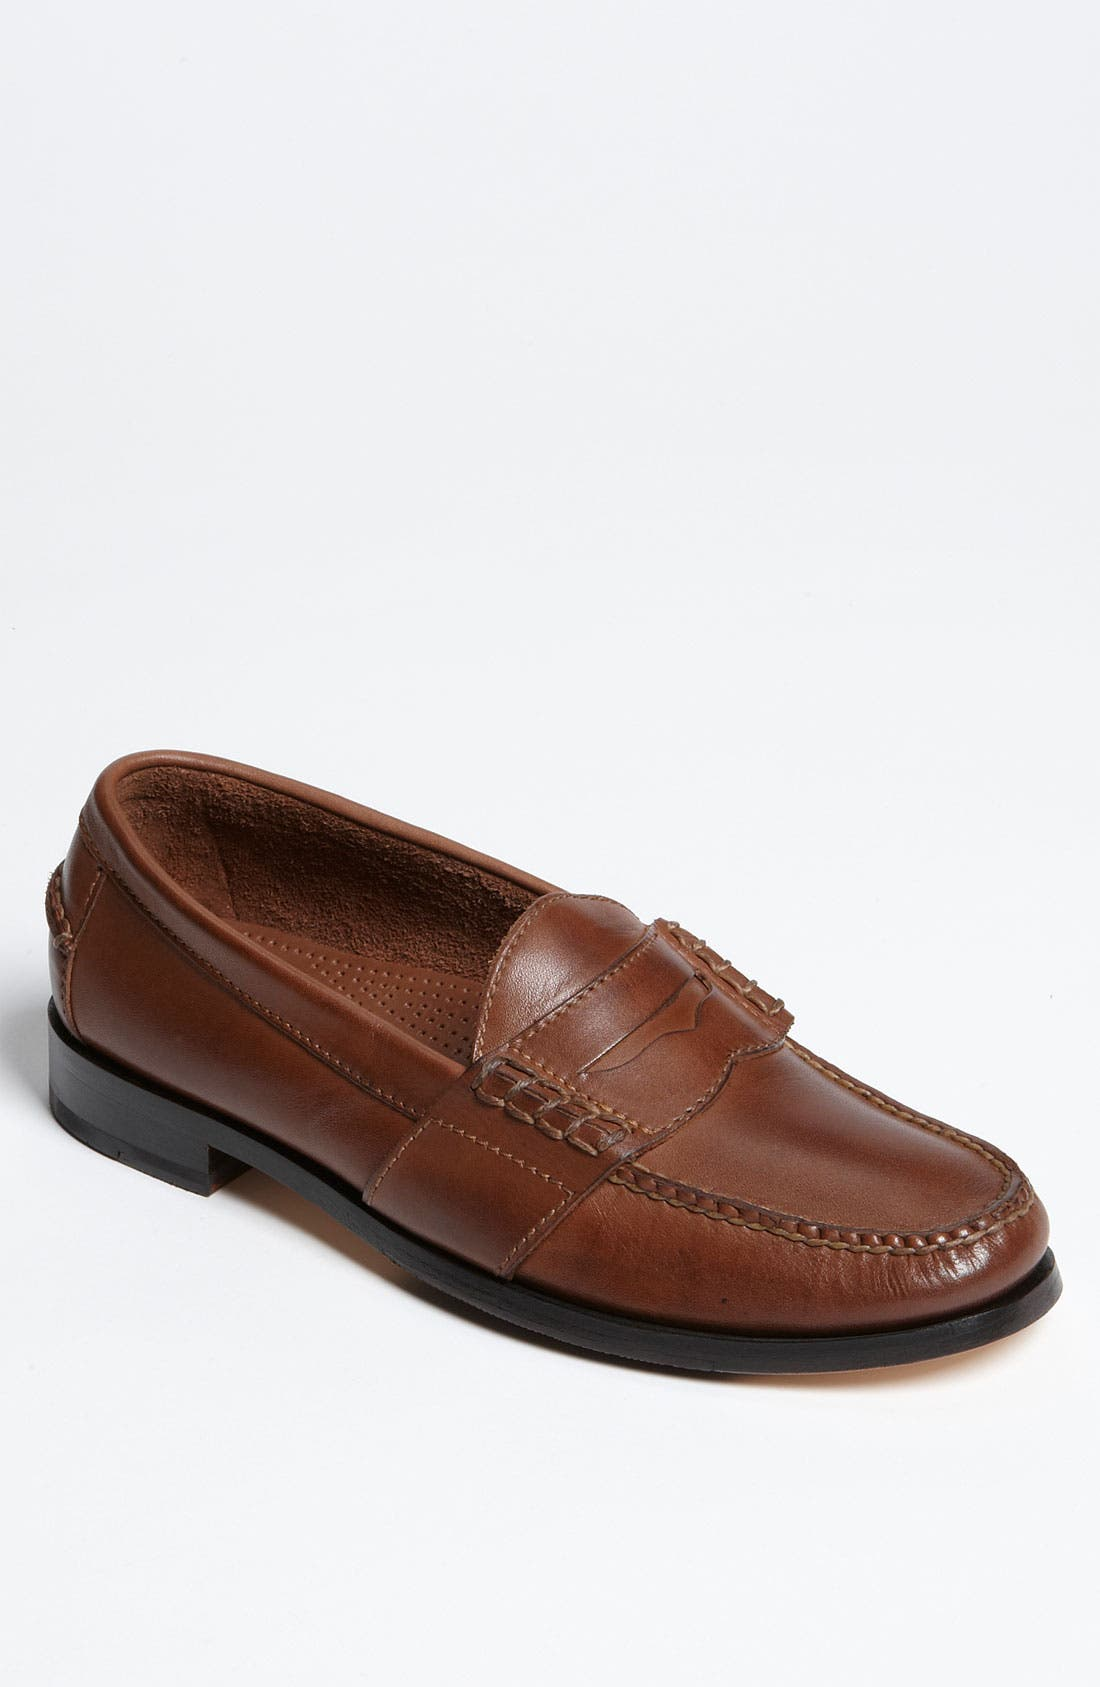 Main Image - Cole Haan 'Bowman' Loafer